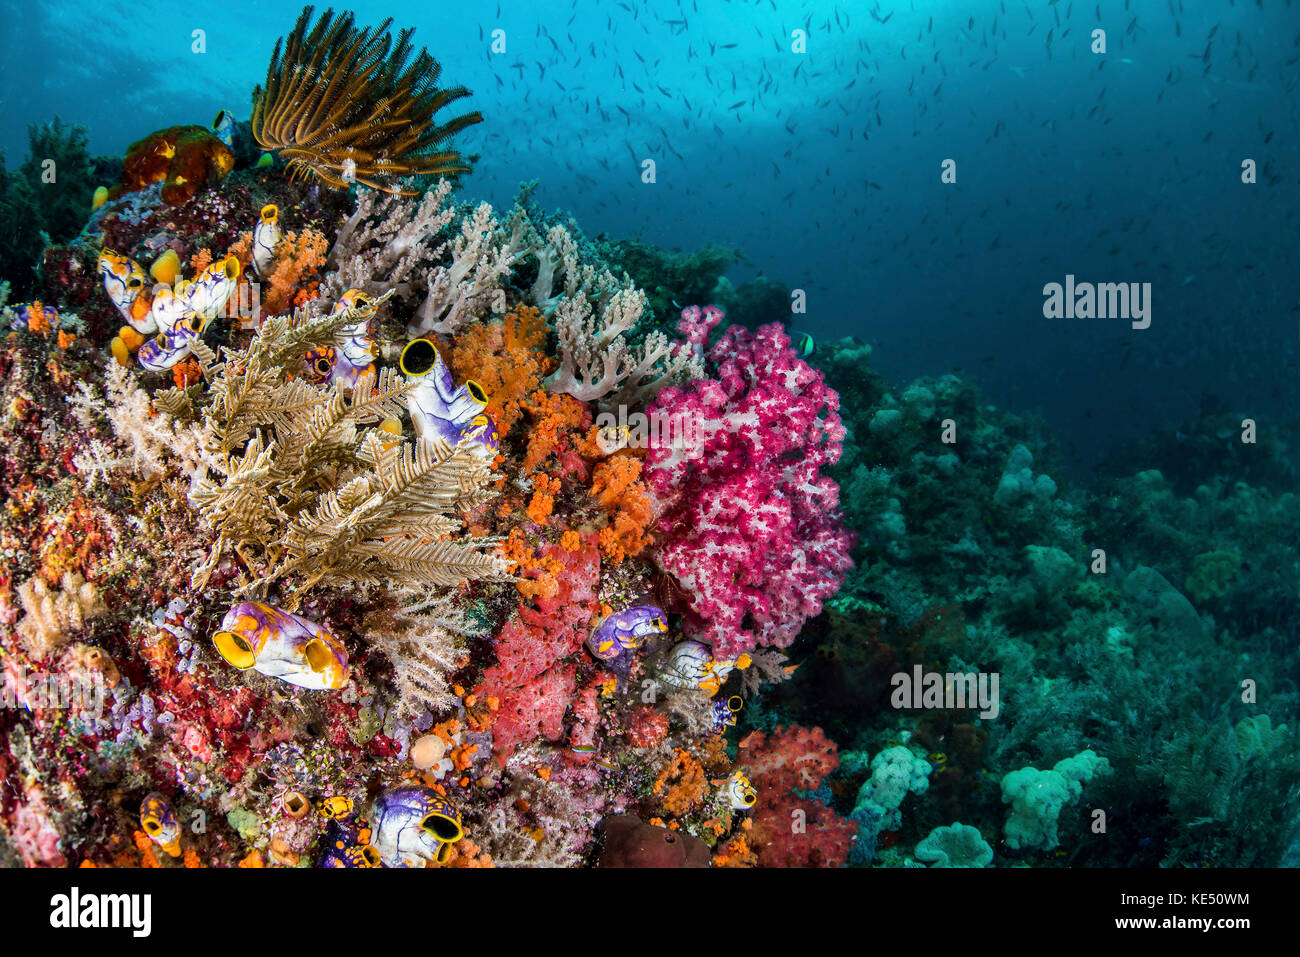 A Colorful Coral Reef With Fish Raja Ampat Indonesia Stock Photo Alamy